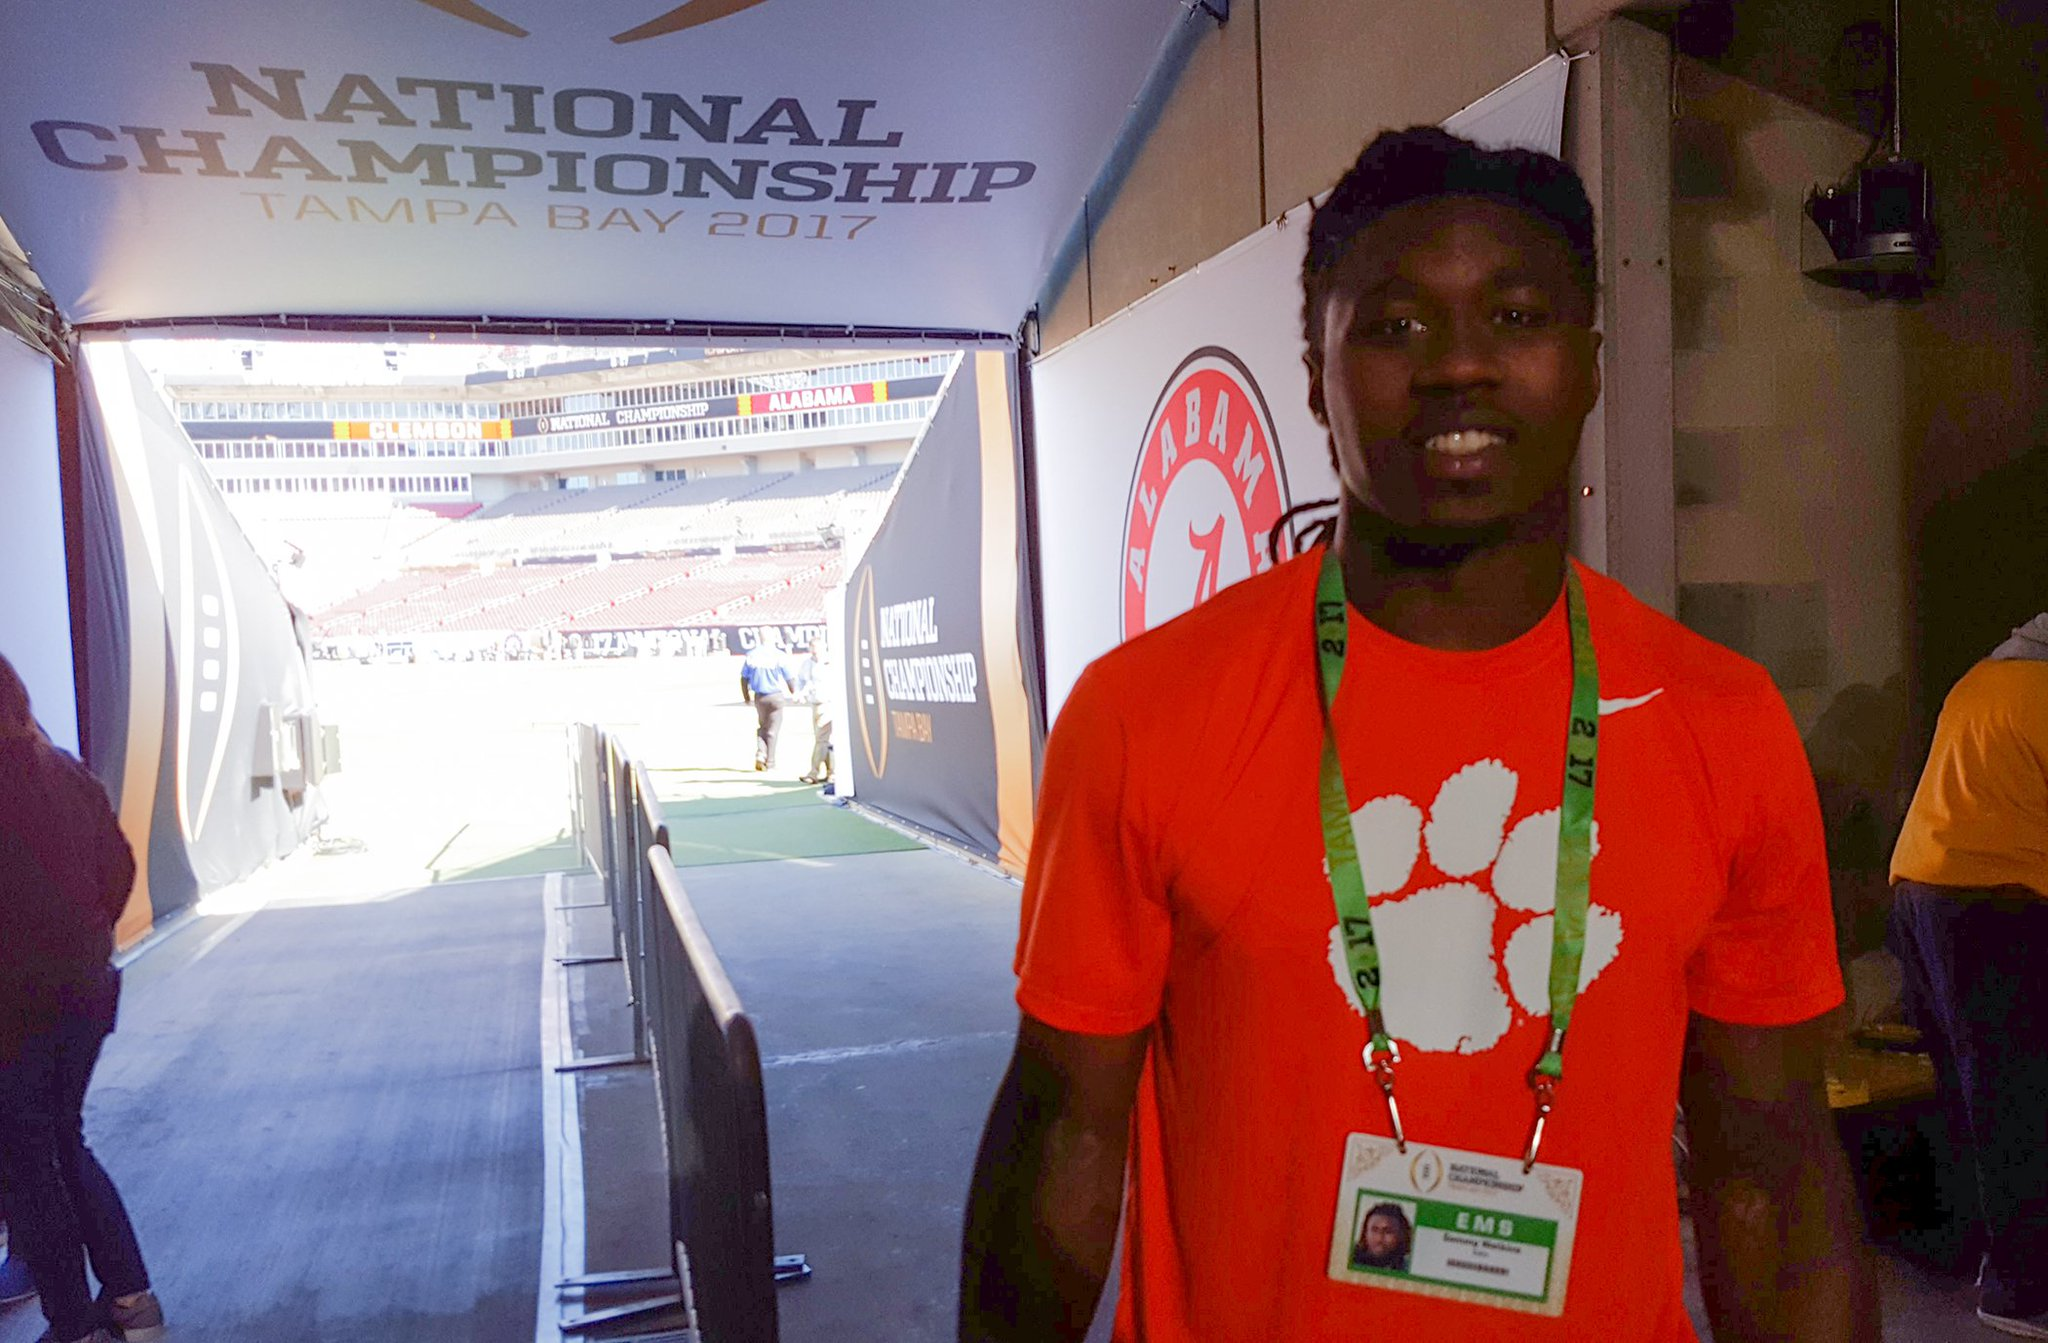 .@sammywatkins is #ALLIN! #ClemsonFamily https://t.co/xm1fNCE0CX